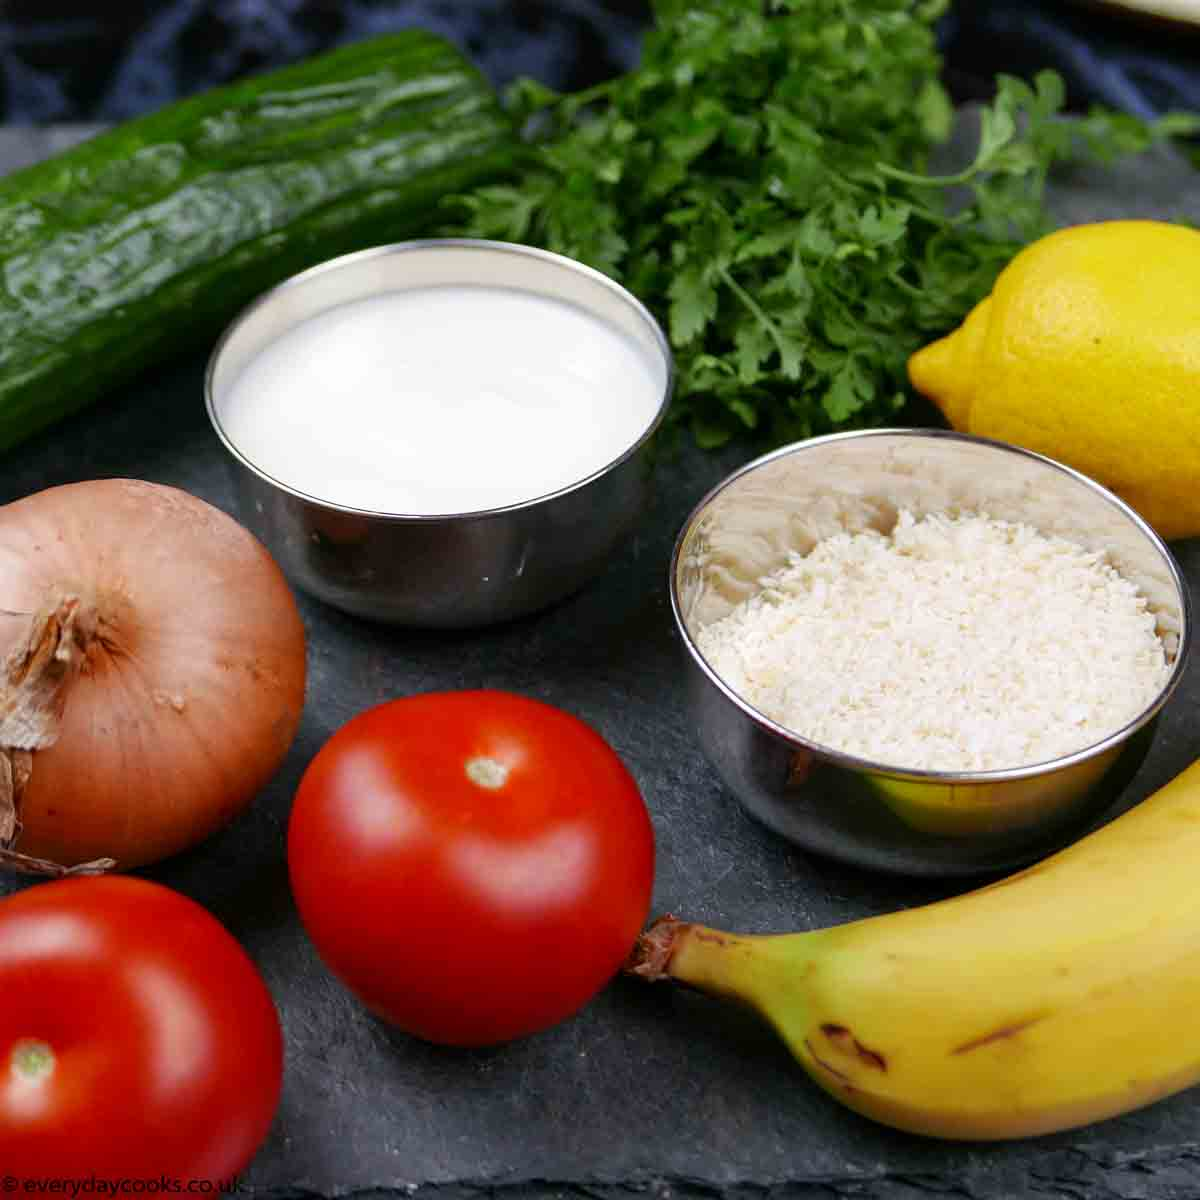 Ingredients for 3 Easy Indian accompaniments